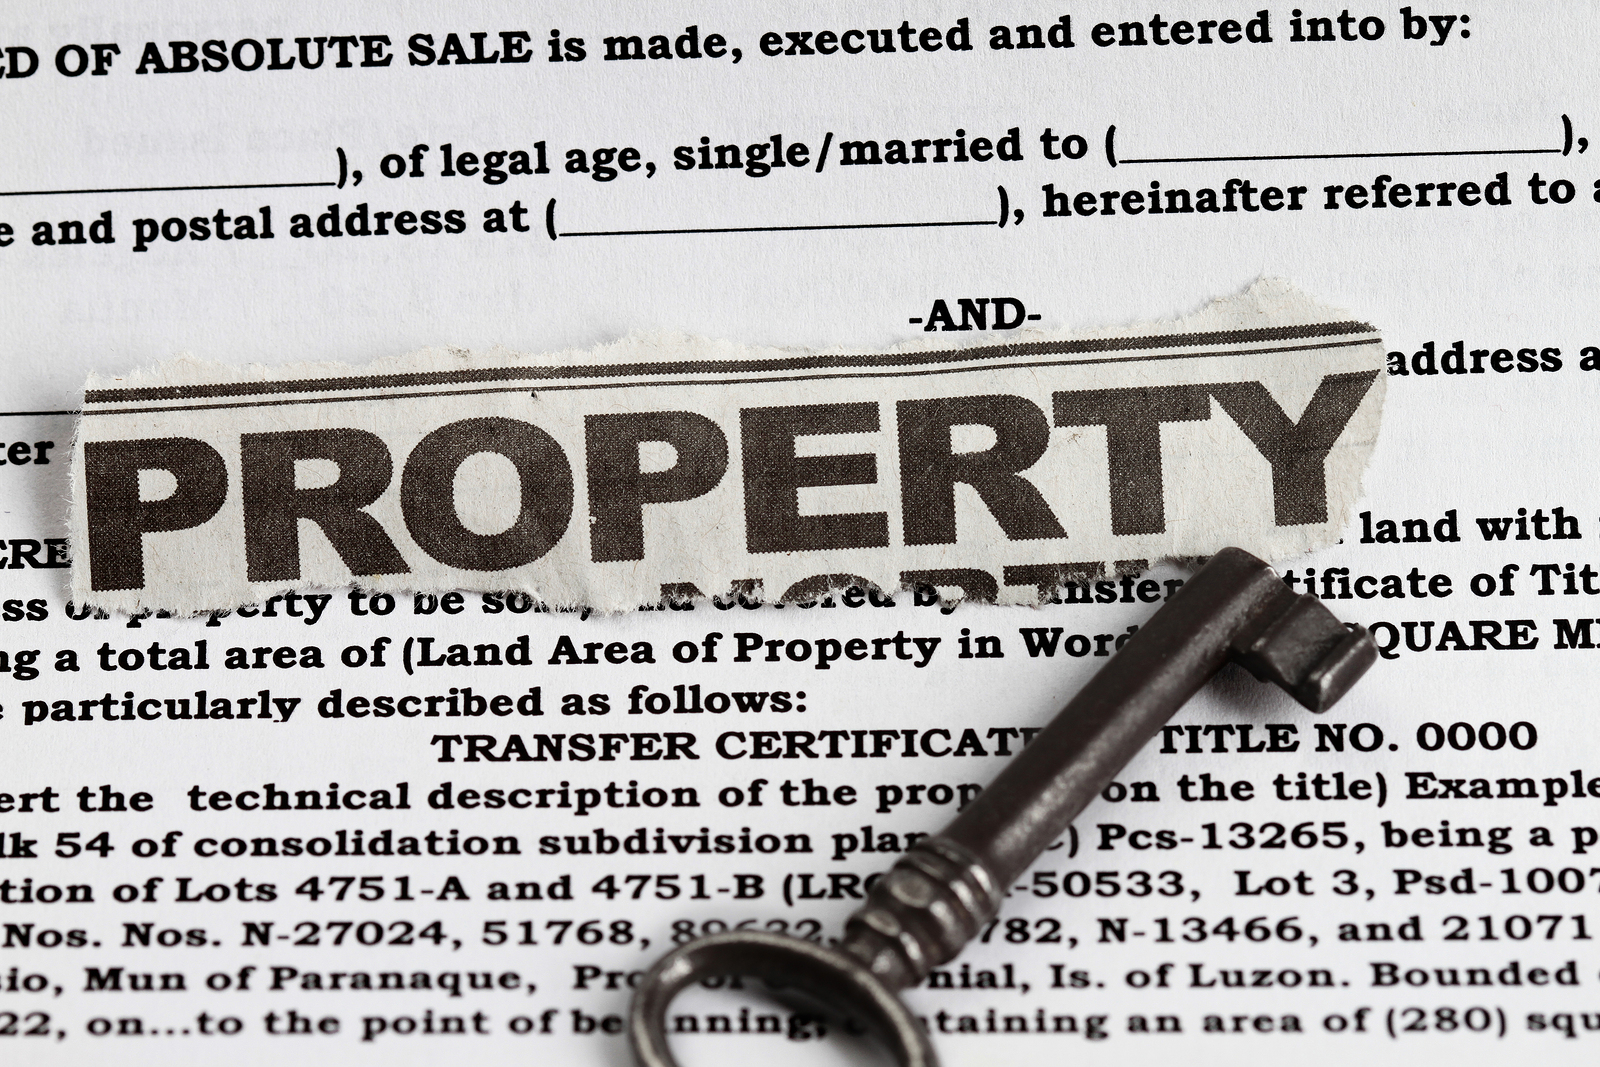 Quit Claim Deed or Quiet Title Action? Does it matter?